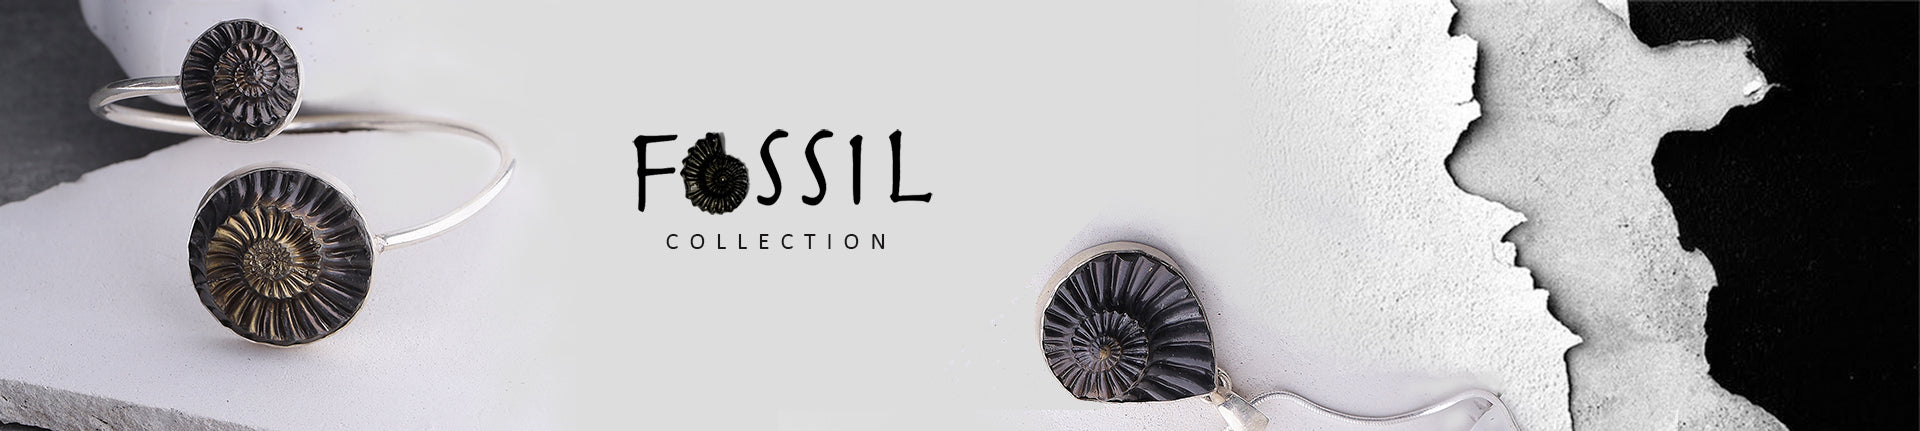 Banner for Fossil Collection based on Ammonites